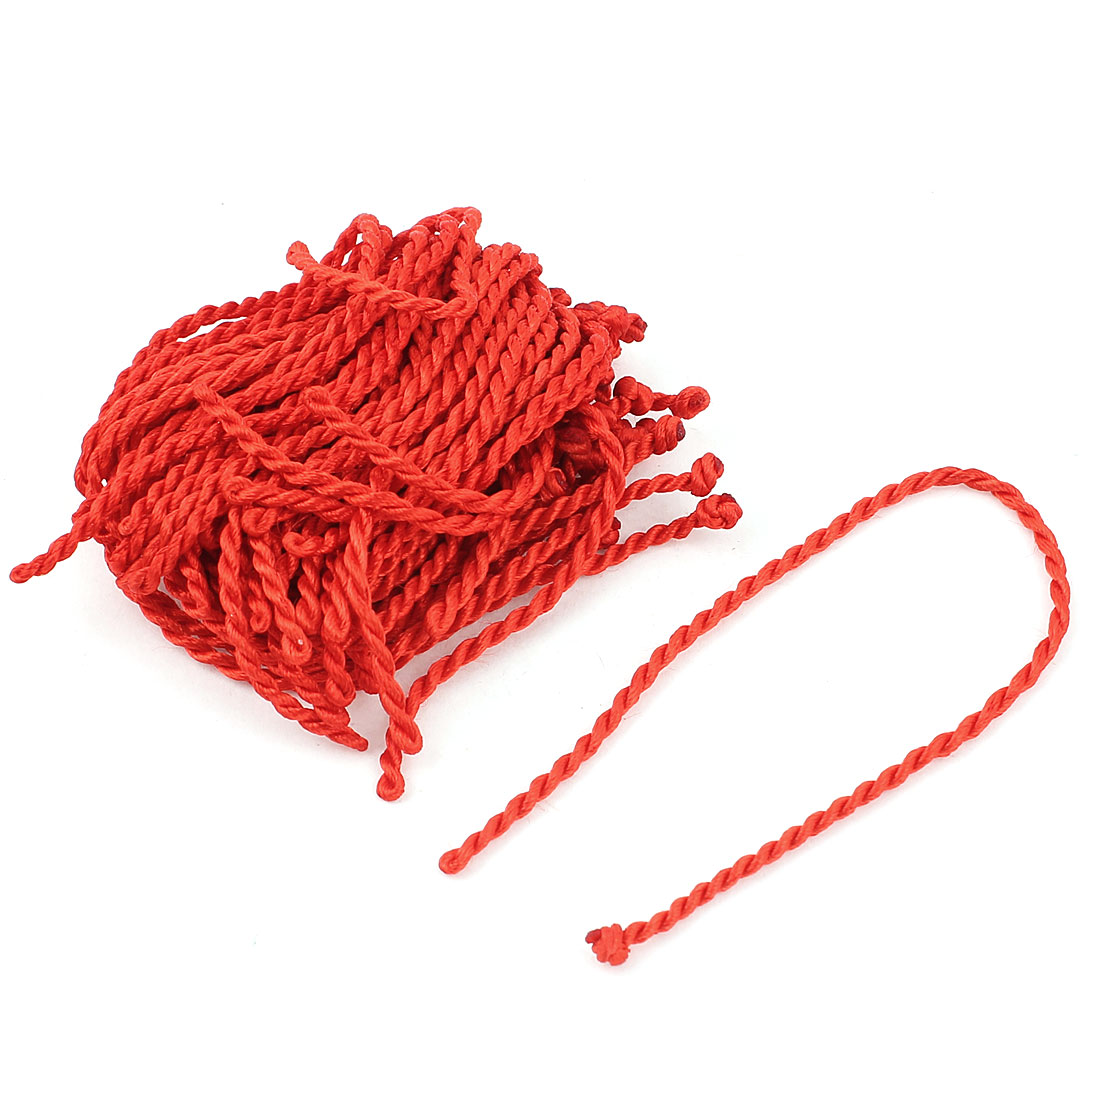 "34pcs 20cm 8"" Long Red Nylon DIY Braided Lucky String Bracelet Knotting Cord Wrist Strap Rope"